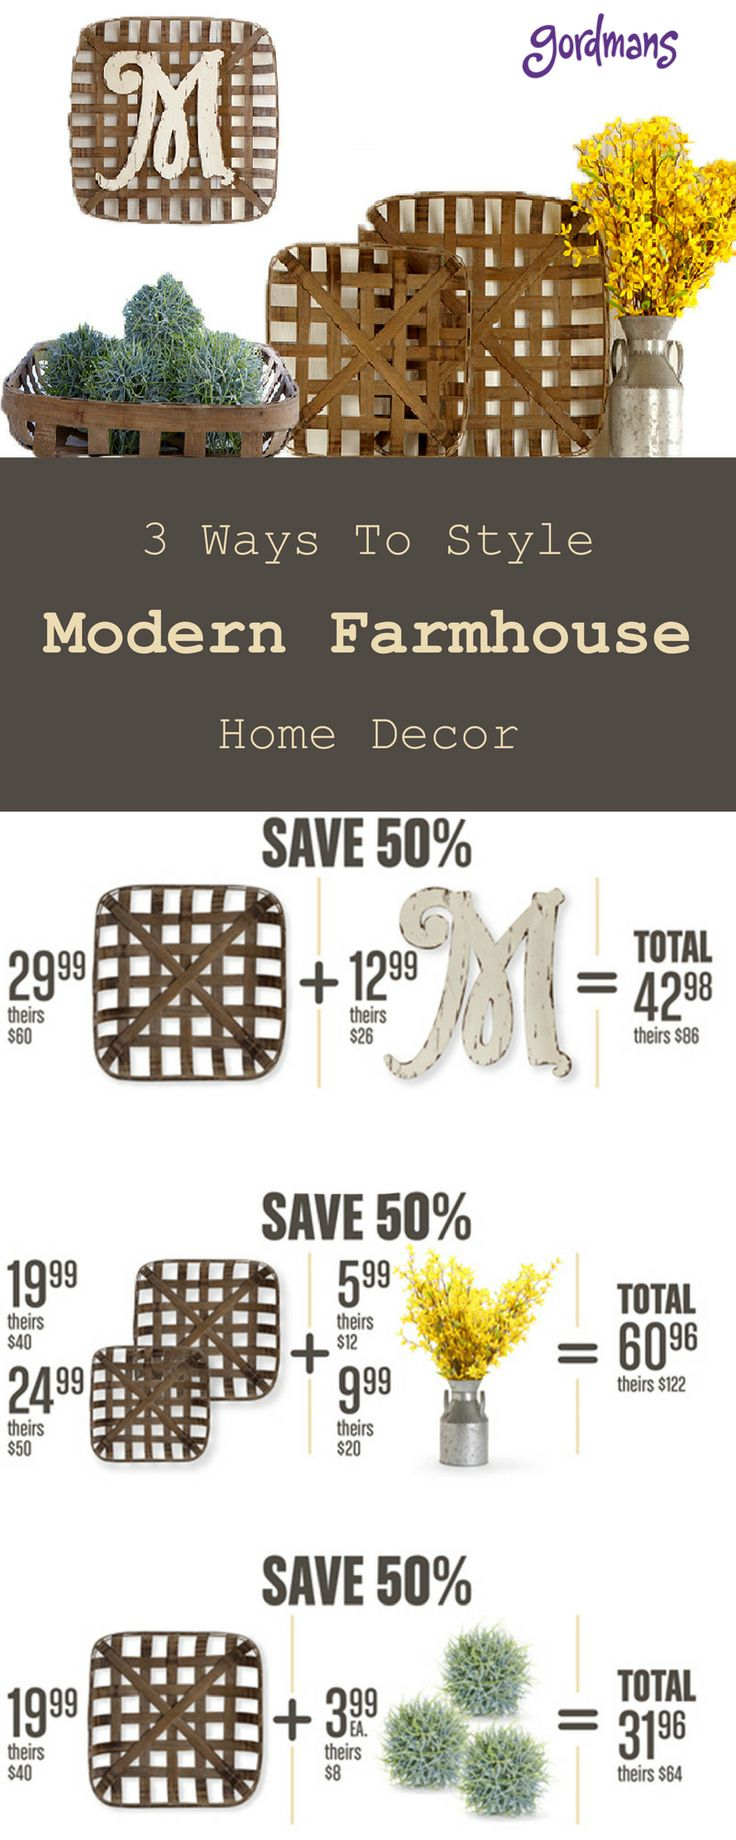 Give your home a makeover with rustic and modern Farmhouse décor from Gordmans. Make your room meaningful with personal touches such as tobacco baskets that can be styled many different ways. Use the tobacco basket as a basket or hang on the wall for an extra touch. Find tobacco baskets for any room in your home at Gordmans.